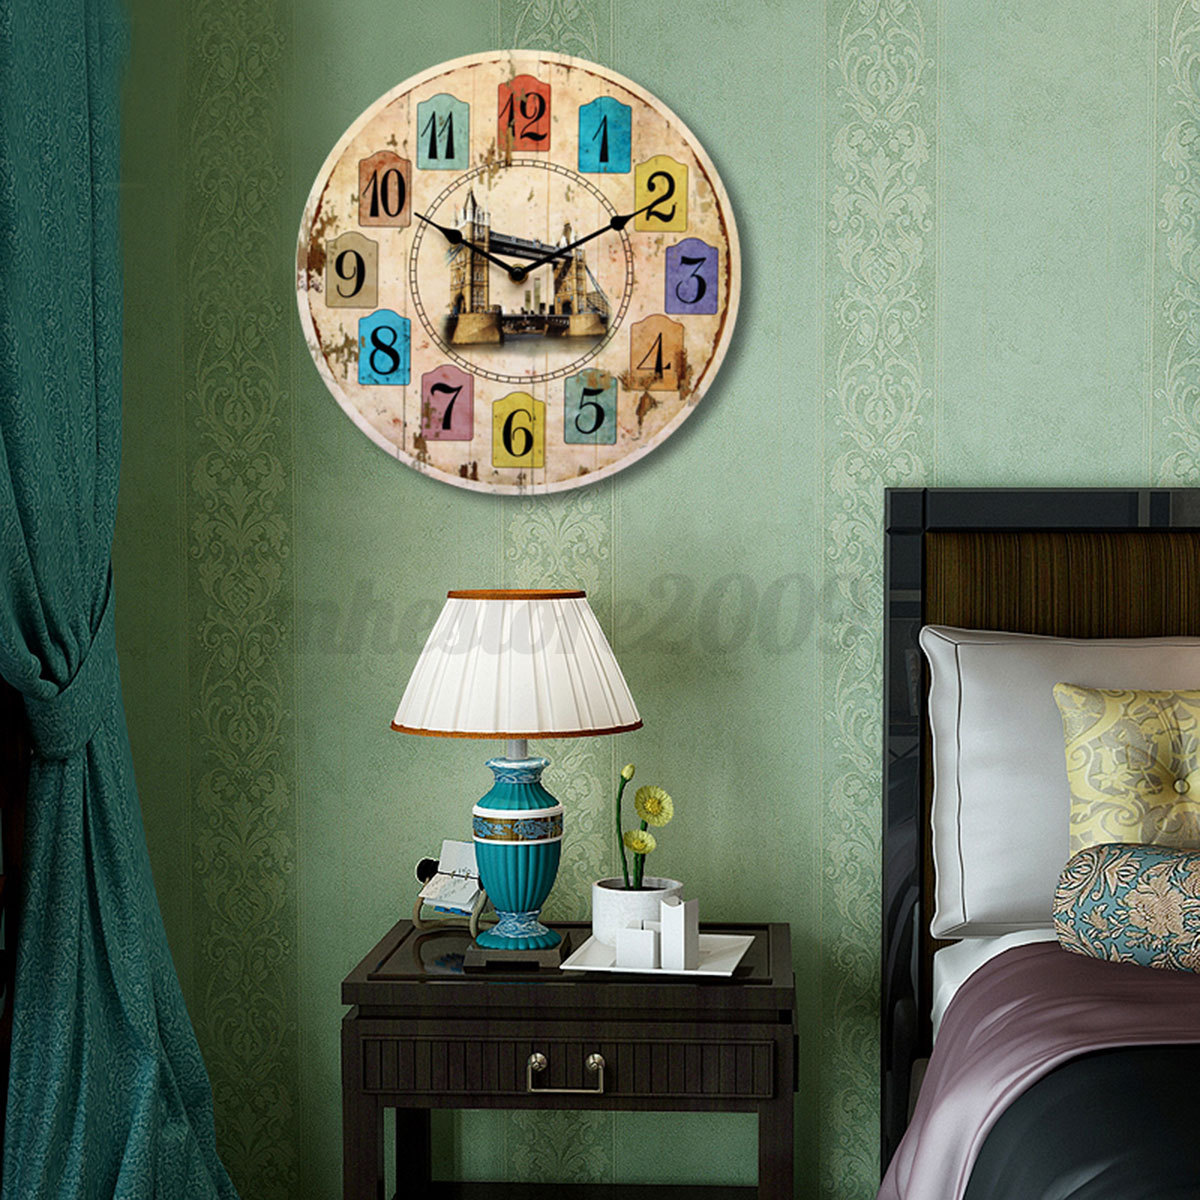 European style round wall clock home office living room decor reminiscence hq ebay - European inspired home decor photos ...